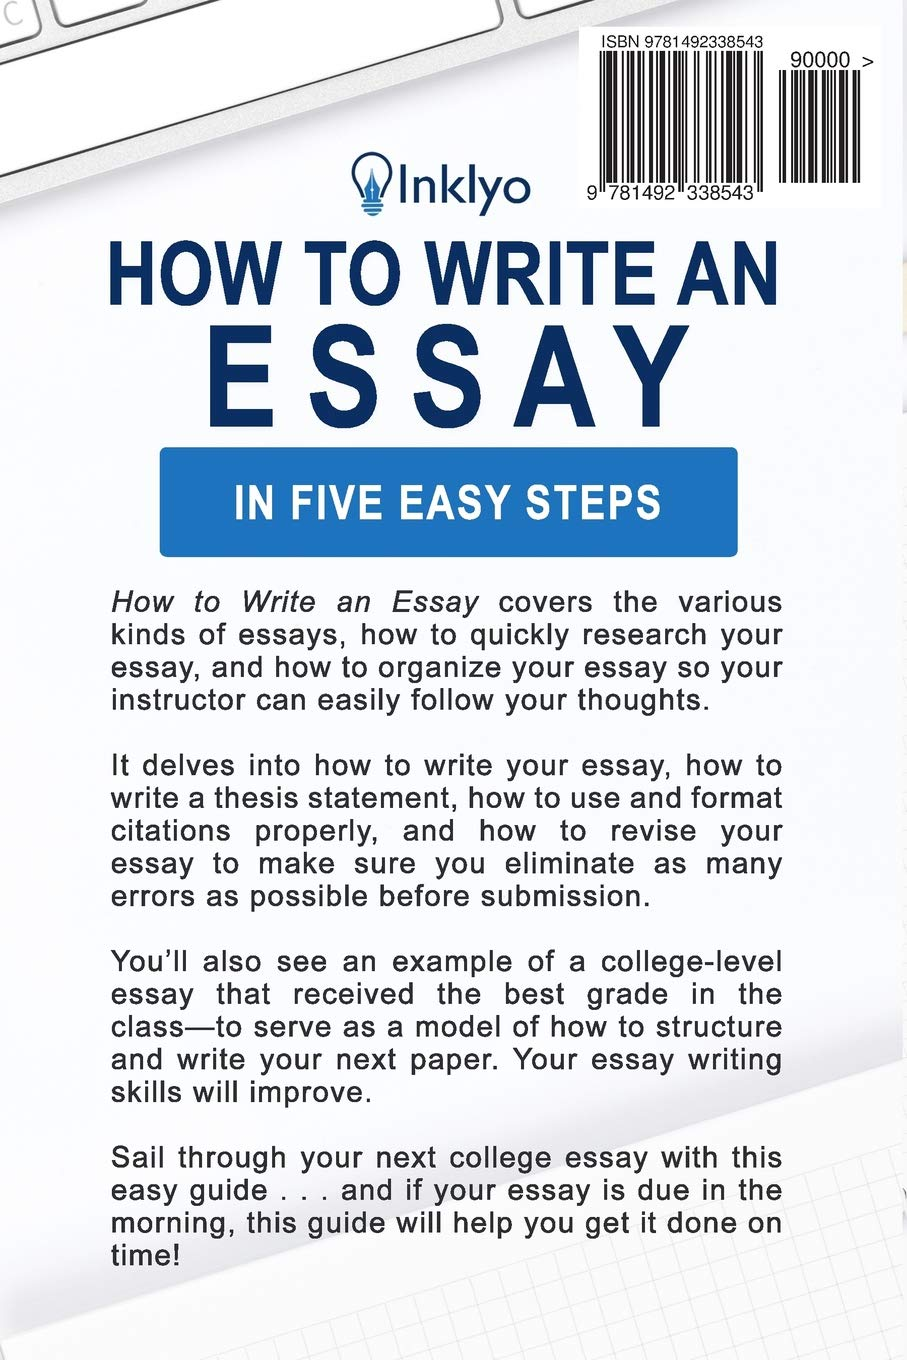 004 71v7ckw5pll Essay Example Steps To Writing Stunning An 4th Grade Middle School Conclusion Full